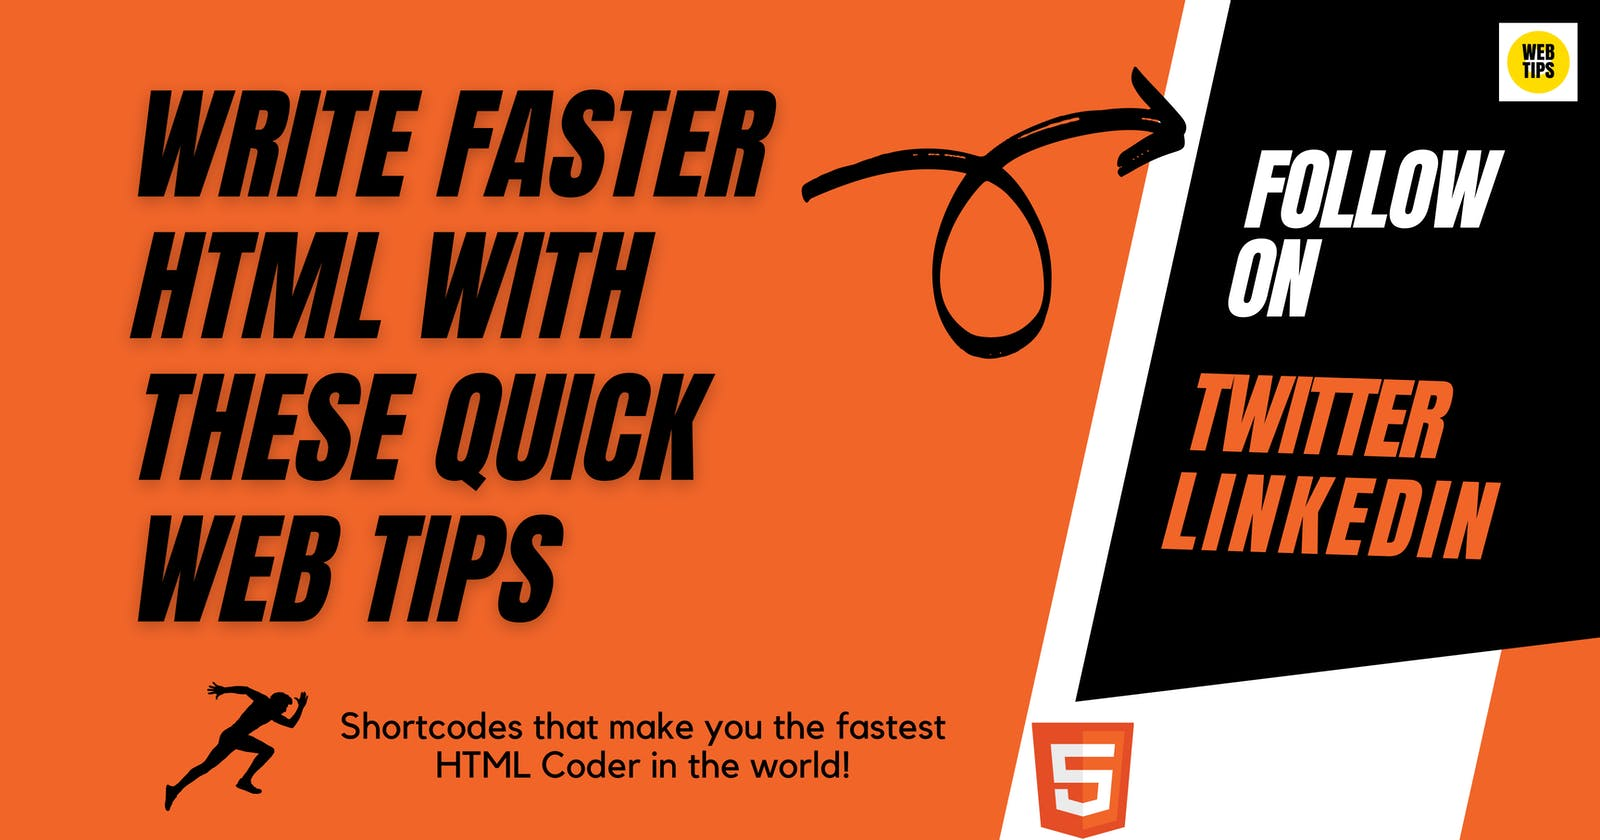 Write faster HTML with these quick web tips and tricks